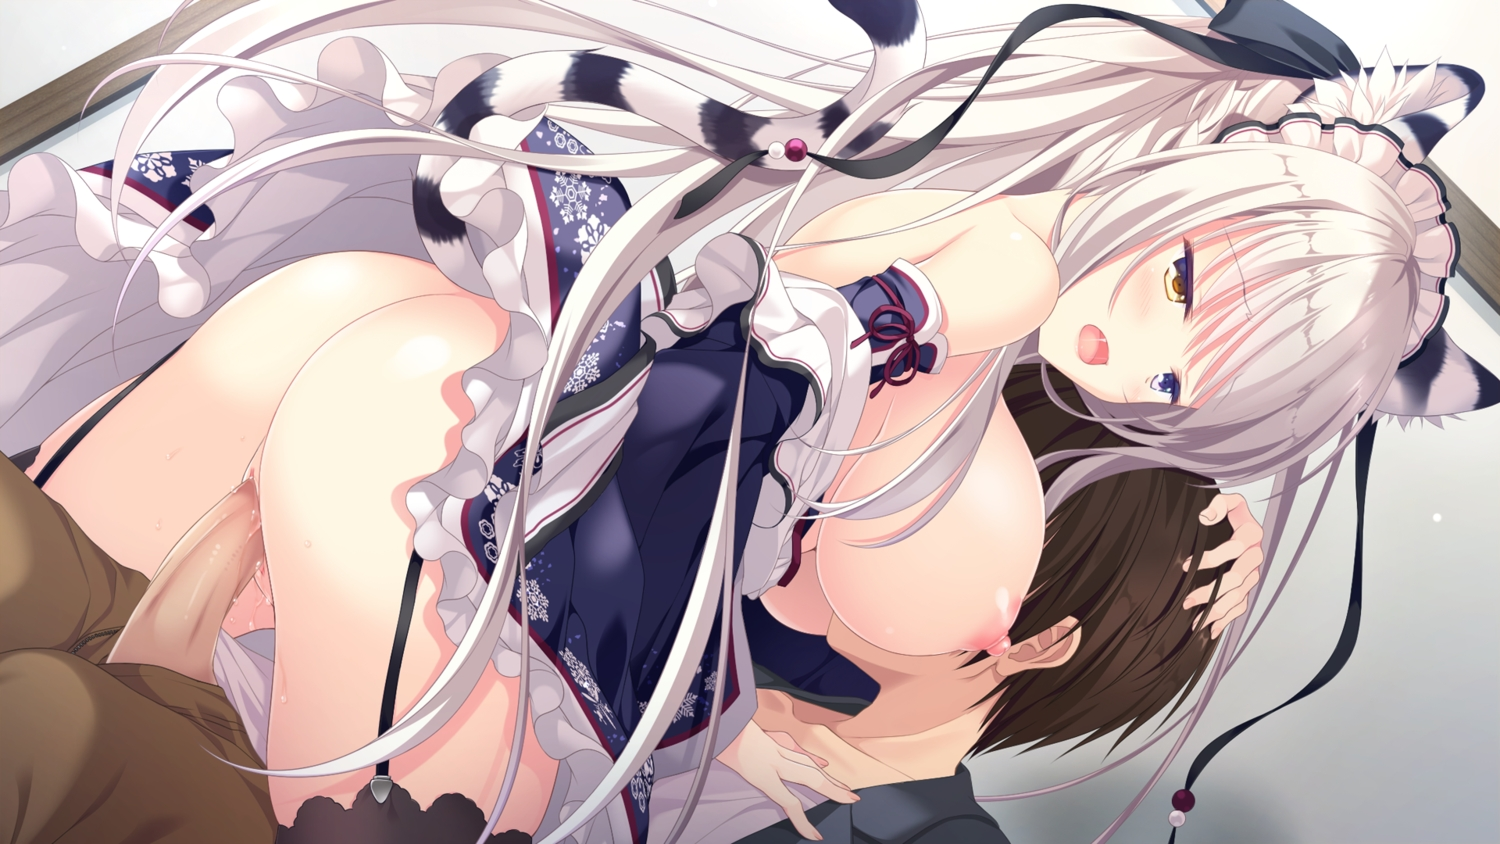 animal_ears bicolored_eyes blush breasts brown_hair catgirl game_cg ishikawa_shana long_hair male neko-nin_exheart nipples no_bra penis sex short_hair tail takano_yuki thighhighs uncensored whirlpool white_hair